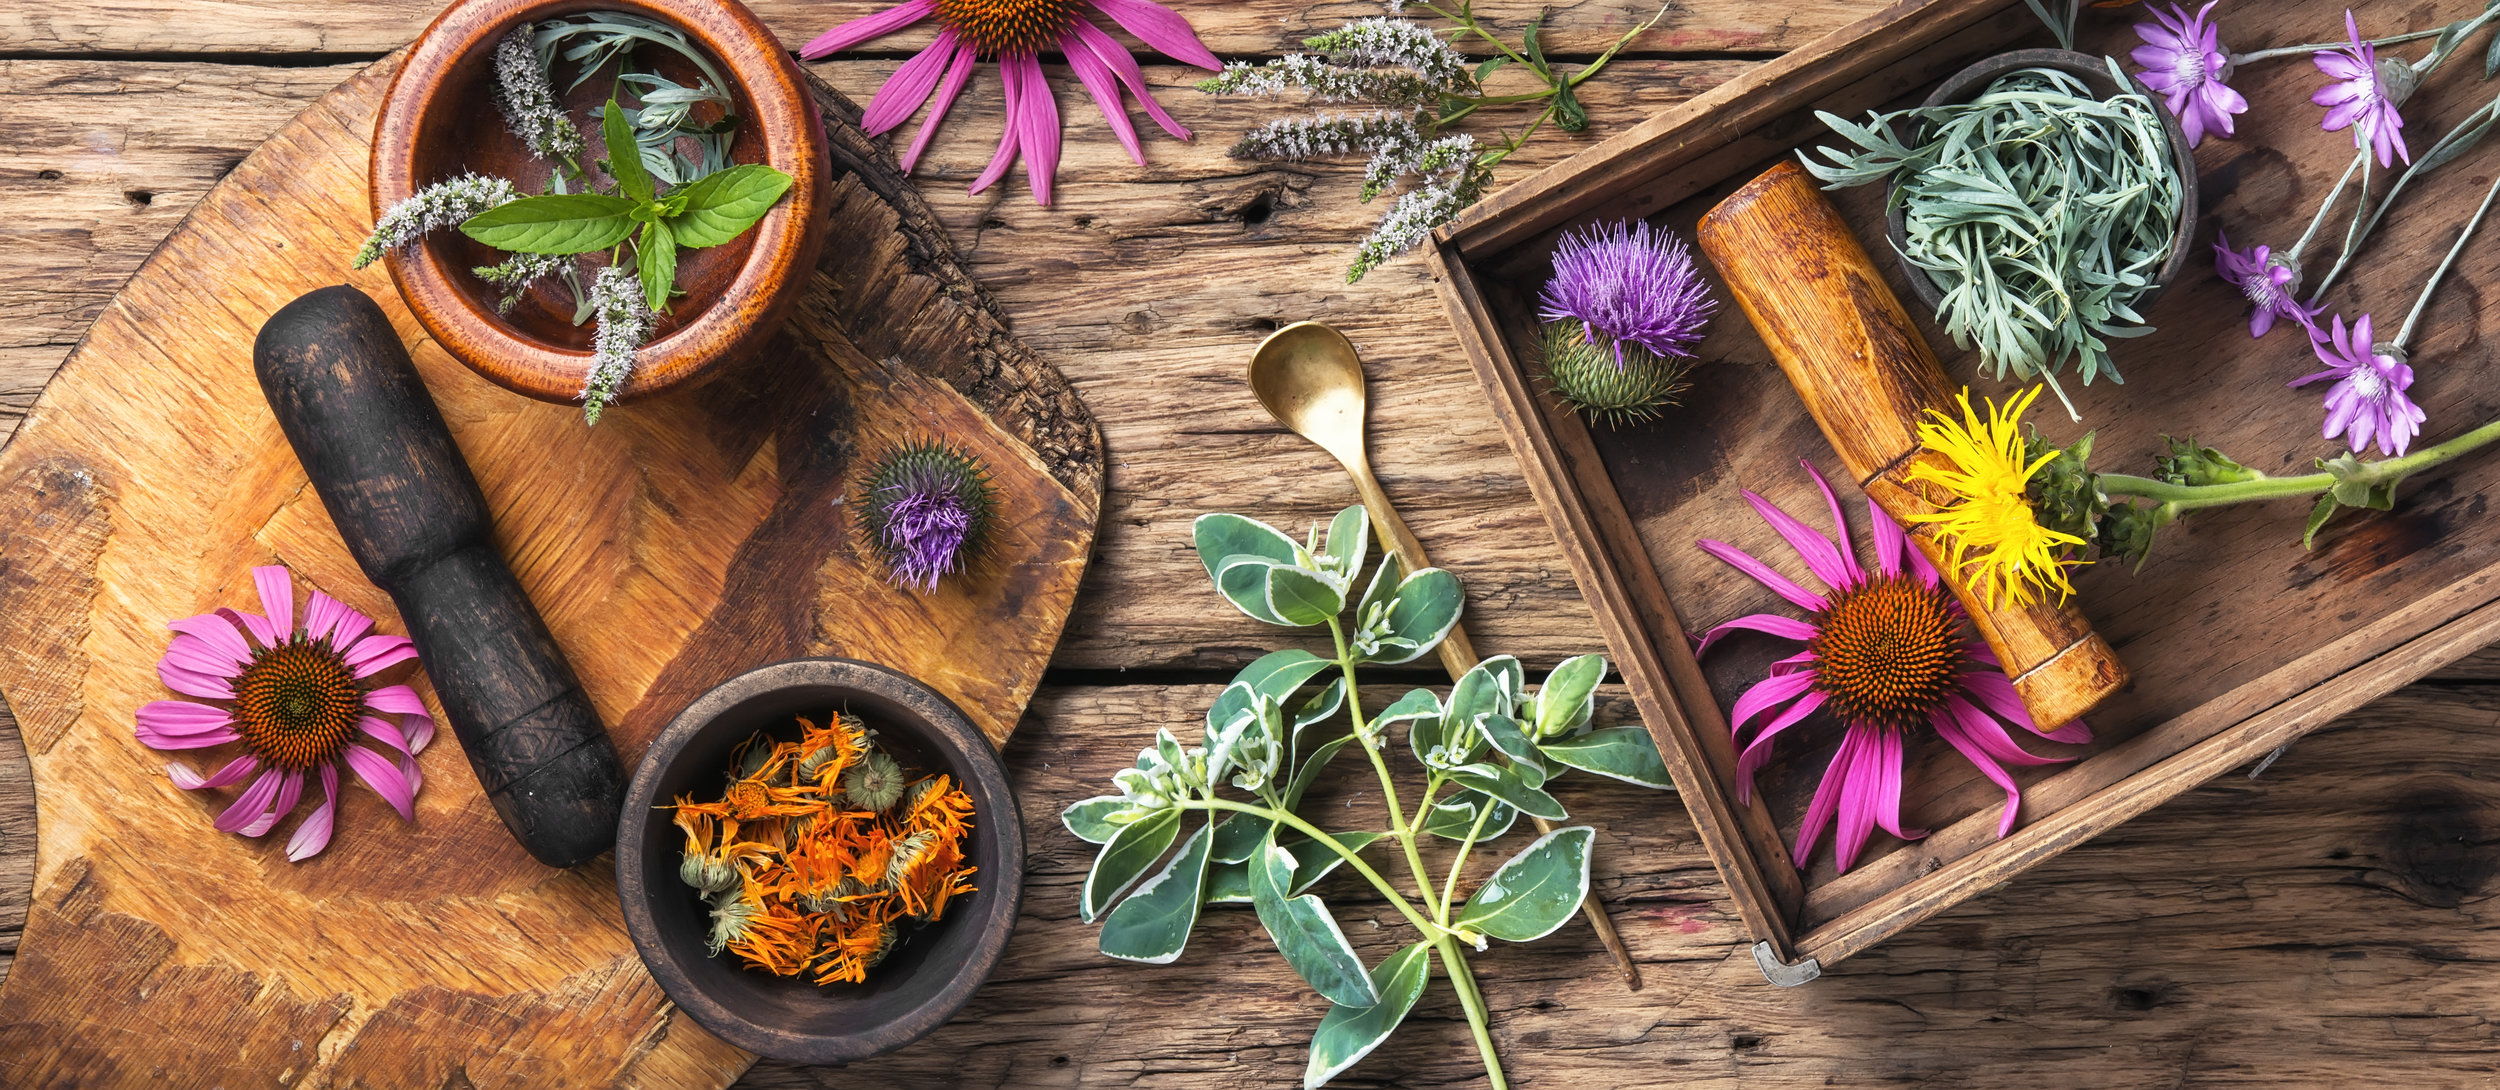 Treating burnout with Herbs - Do you have Adrenal Fatigue?